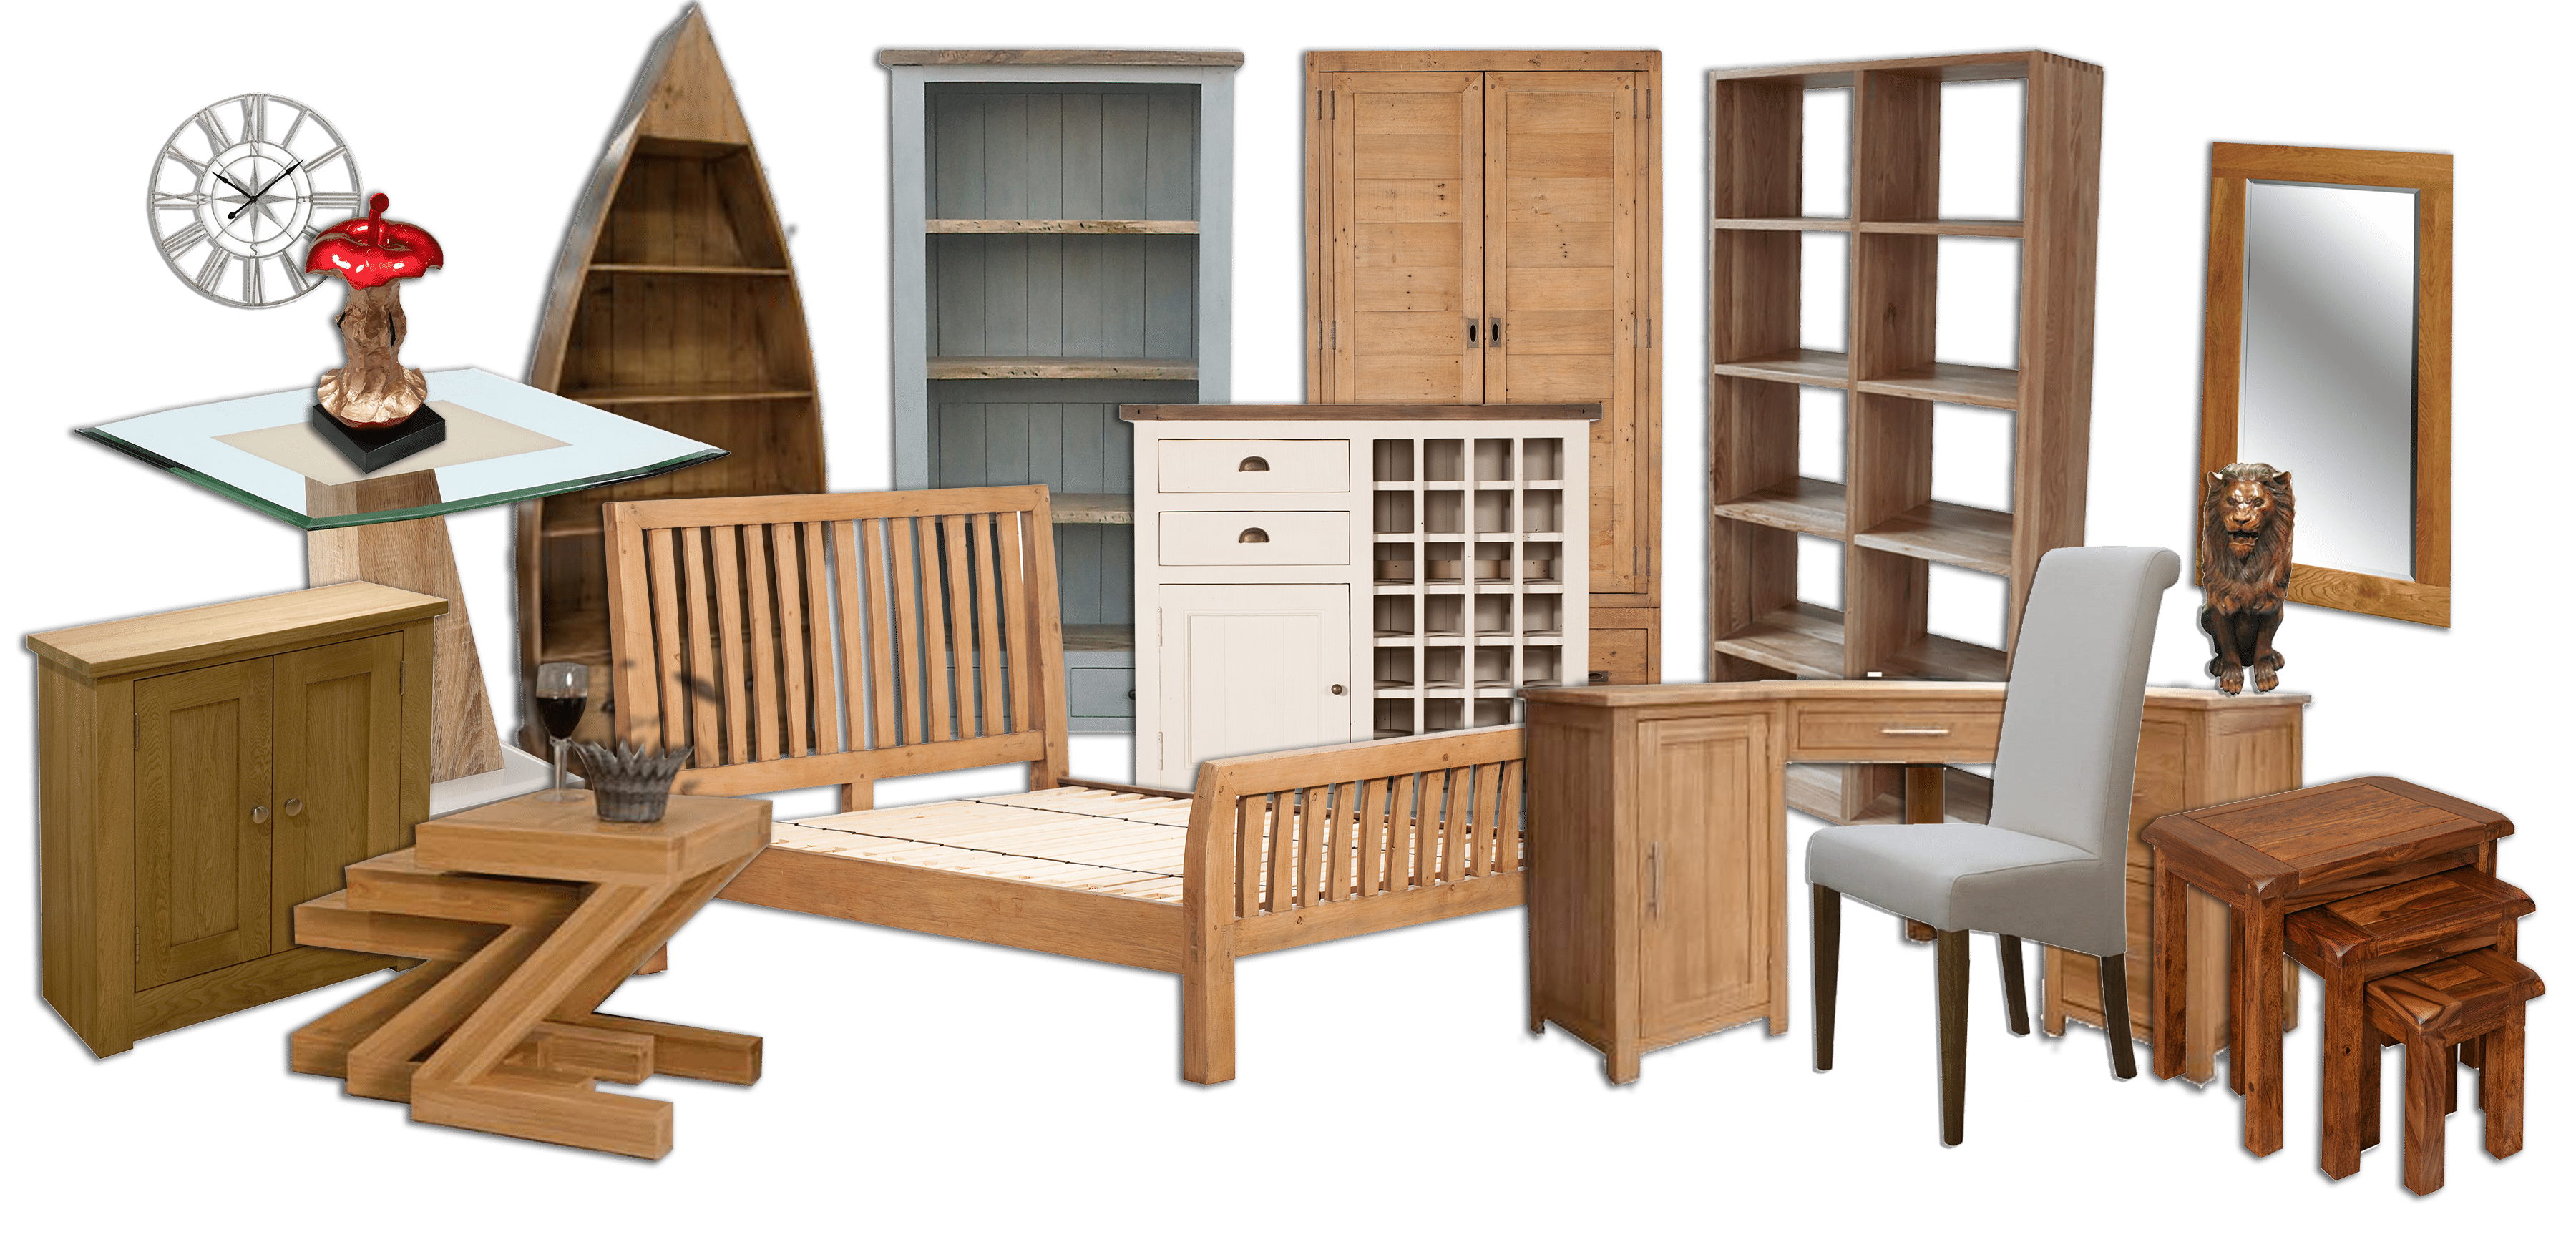 Furniture Background PNG Images